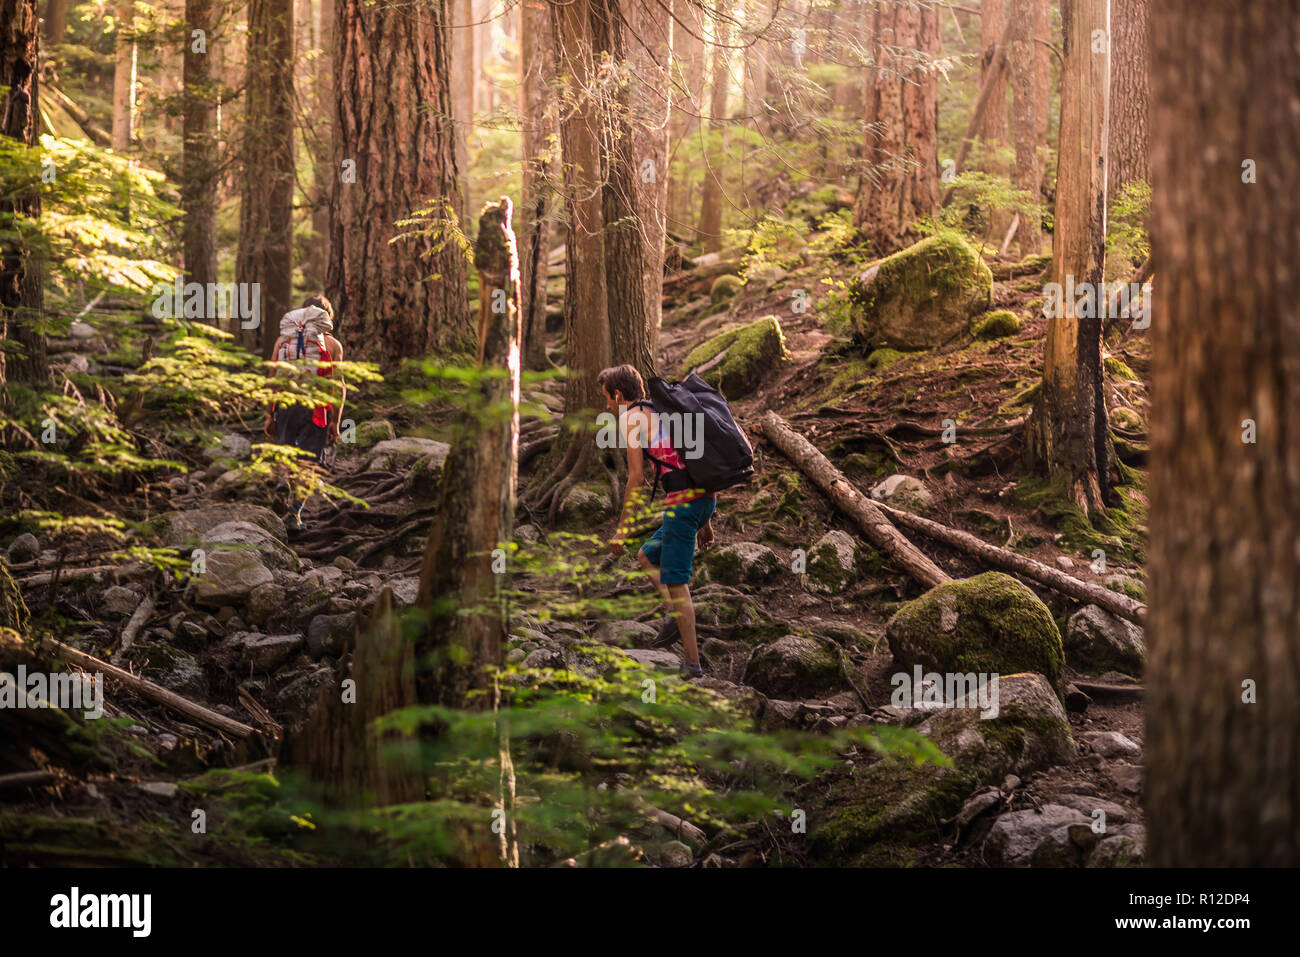 Rock climbers walking through forest, Squamish, Canada - Stock Image